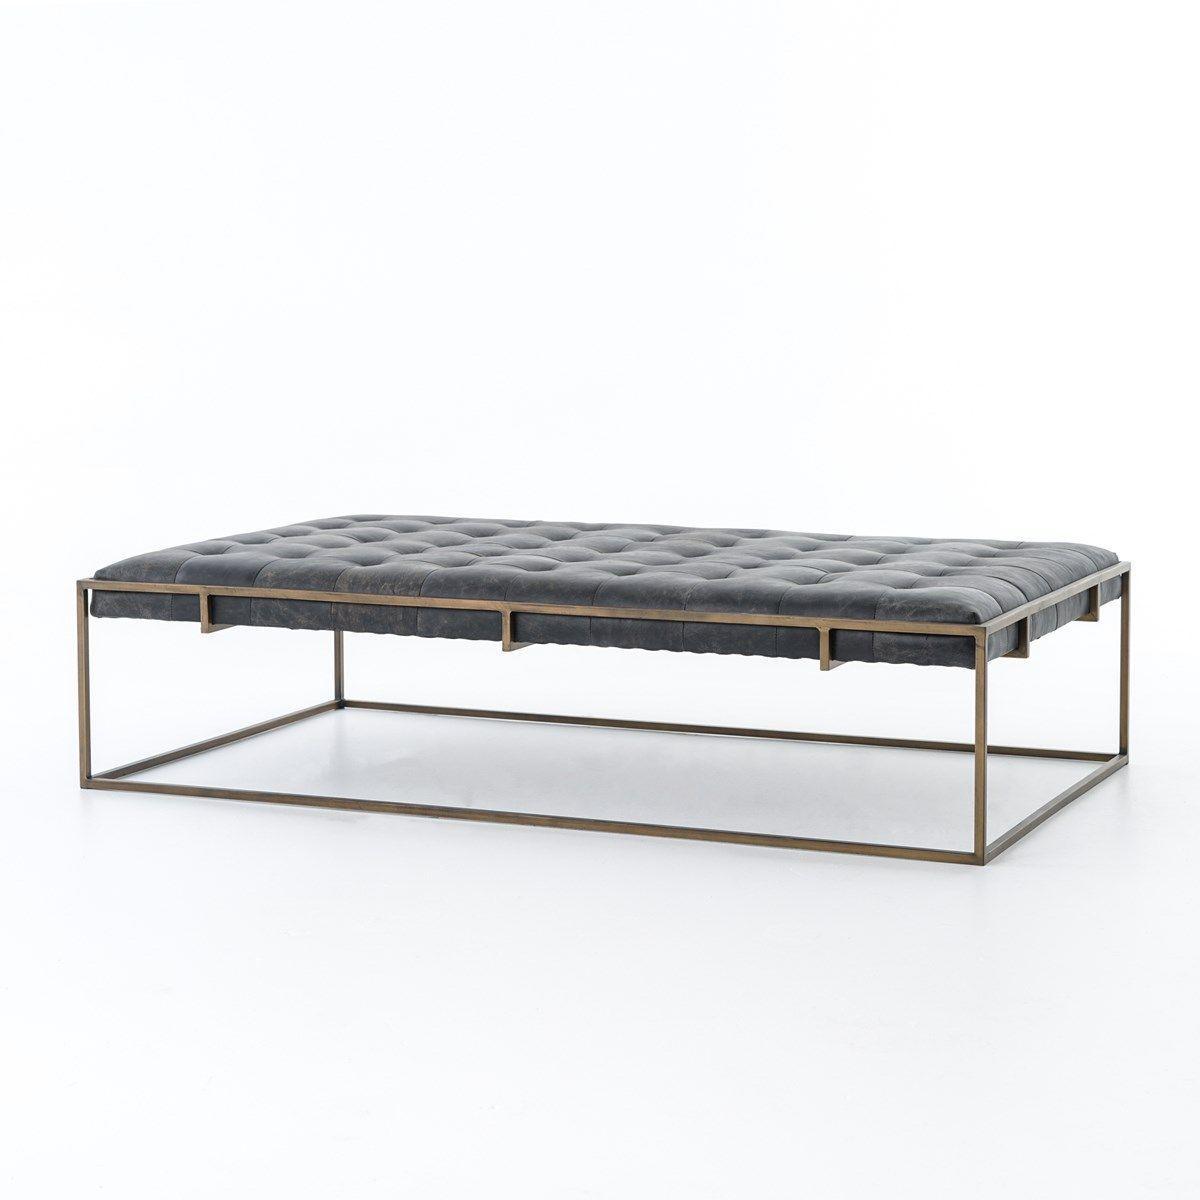 White leather ottoman coffee table - Traditional Library Furniture Style Meets Modern Sensibilities In Our Oxford Tufted Black Leather Ottoman Coffee Table